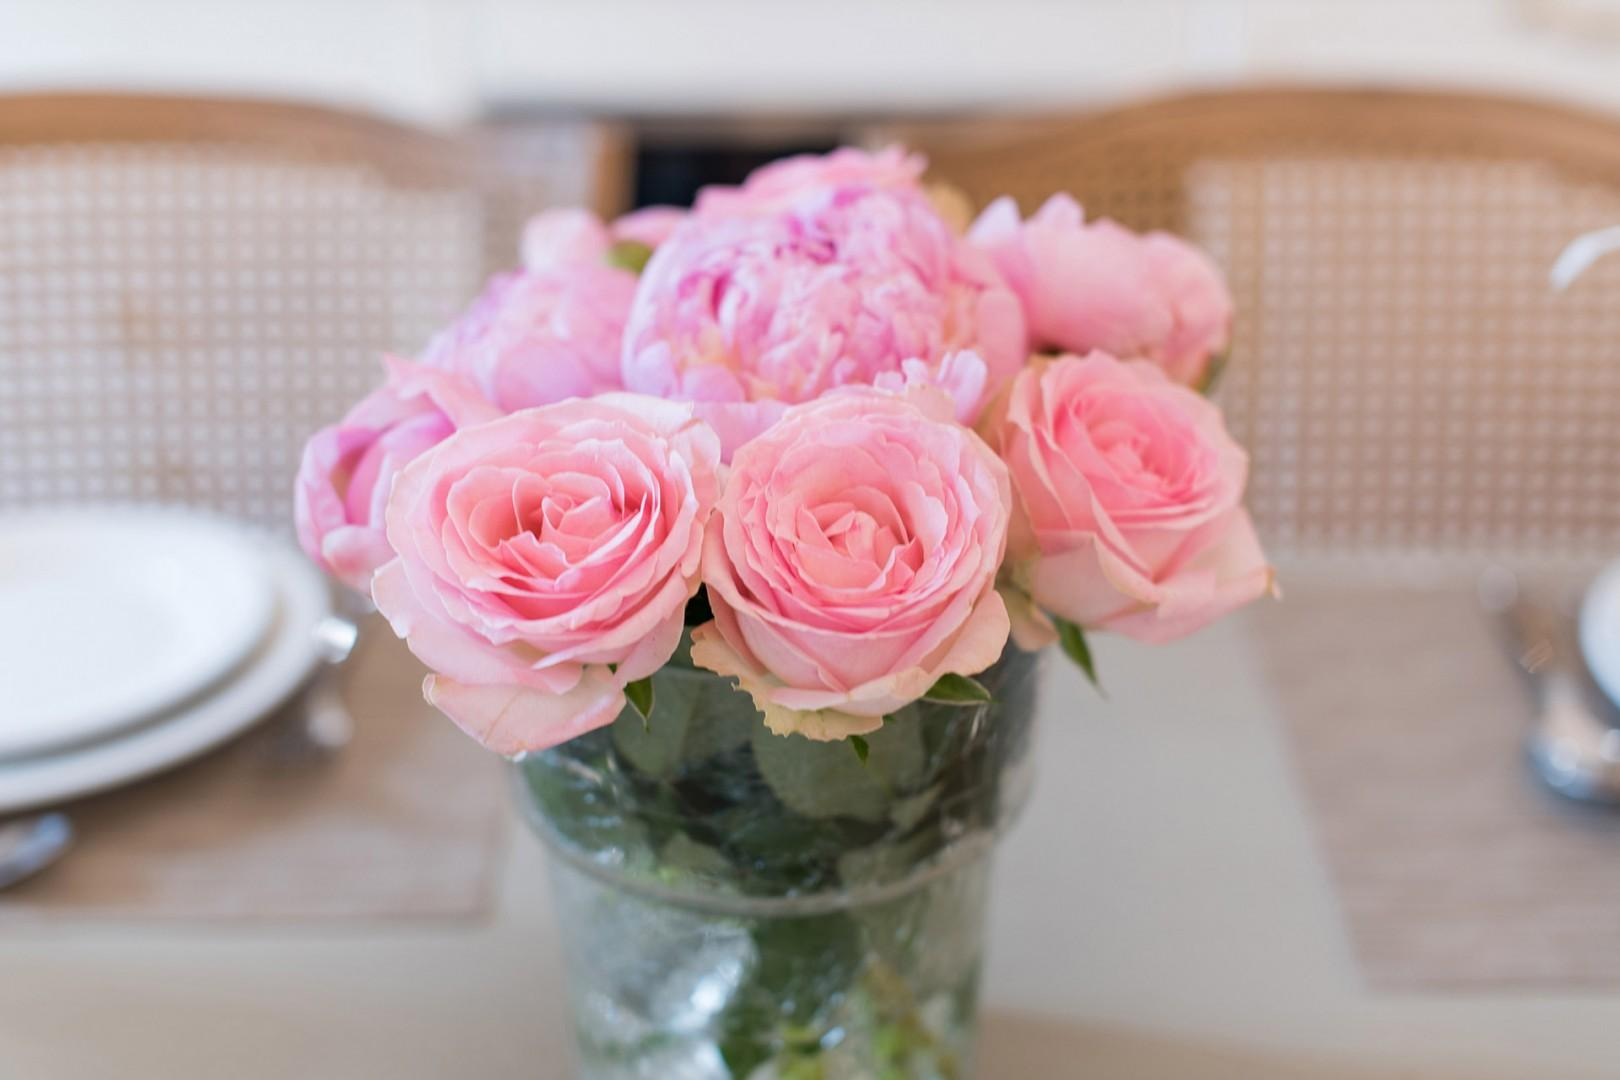 Pick up flowers from the nearby market to decorate your table.